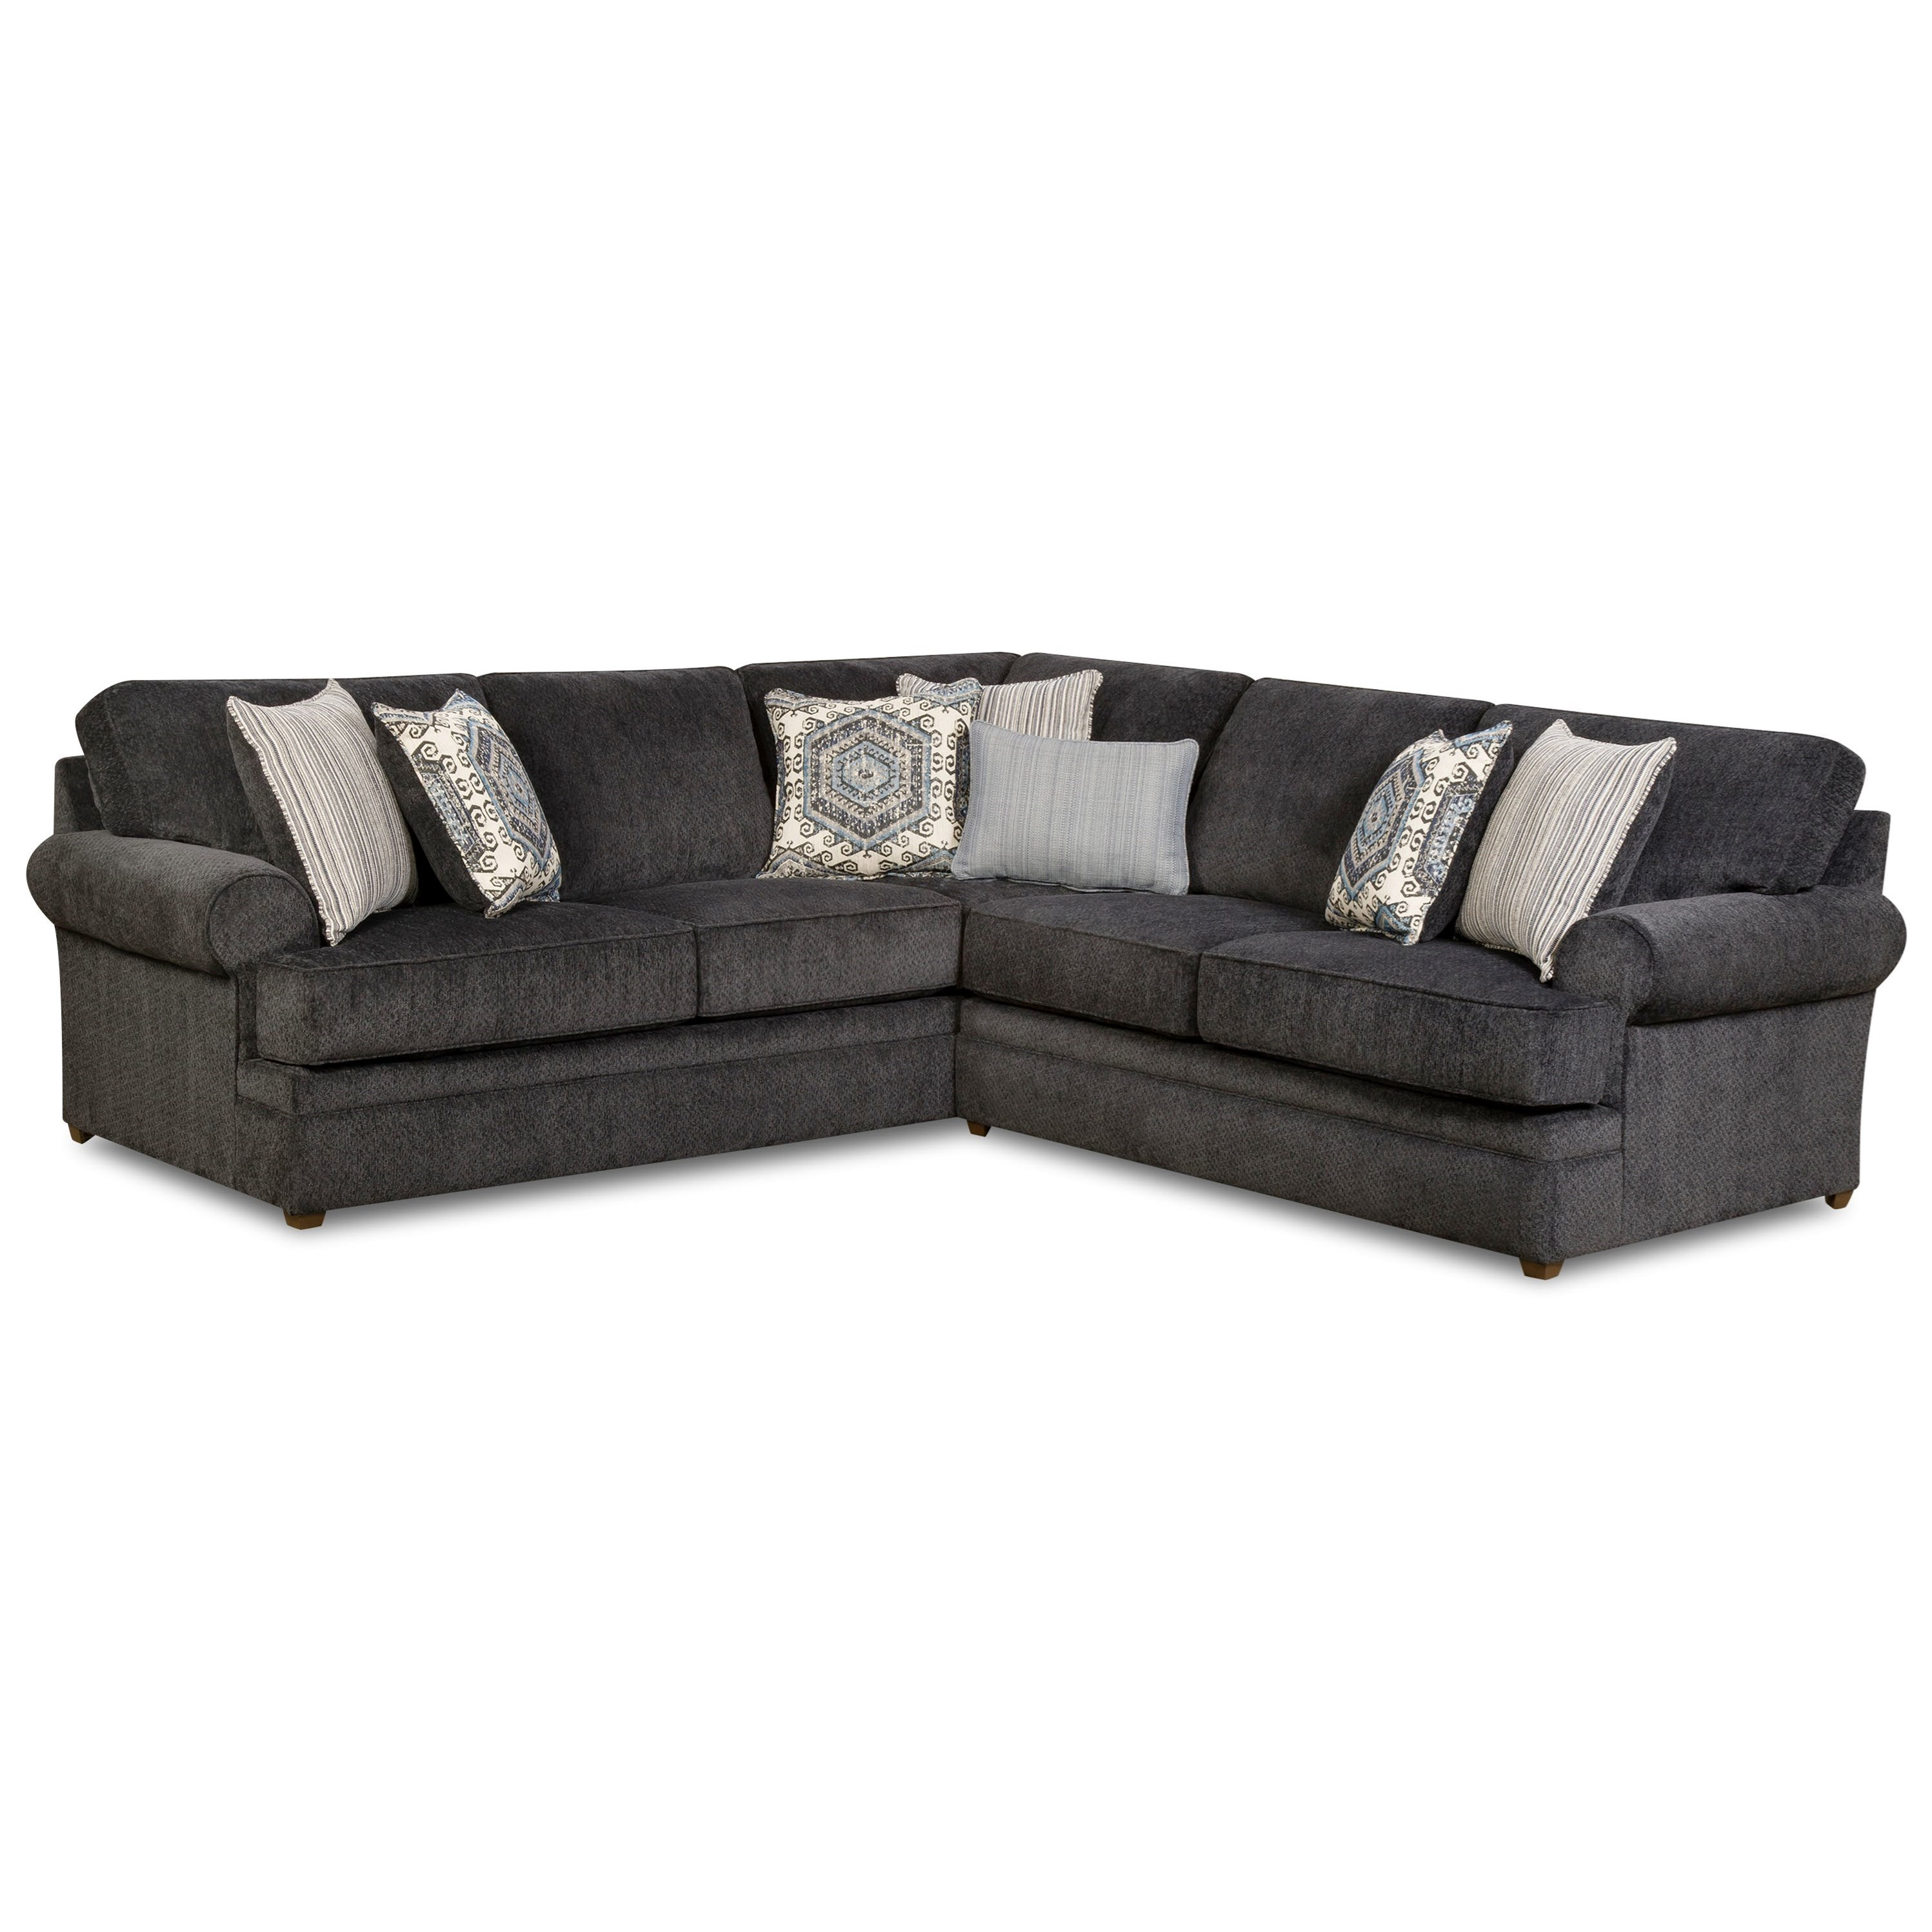 Remarkable 8530 Br Transitional Sectional Sofa Short Links Chair Design For Home Short Linksinfo